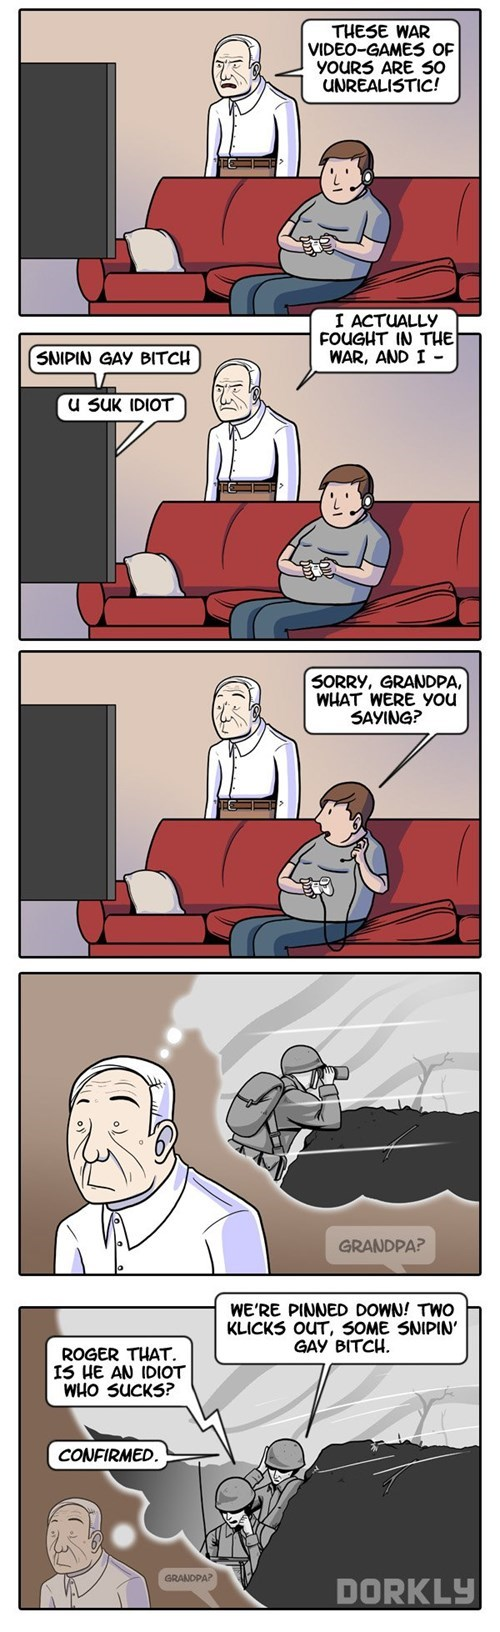 dorkly video games web comics - 7858318080